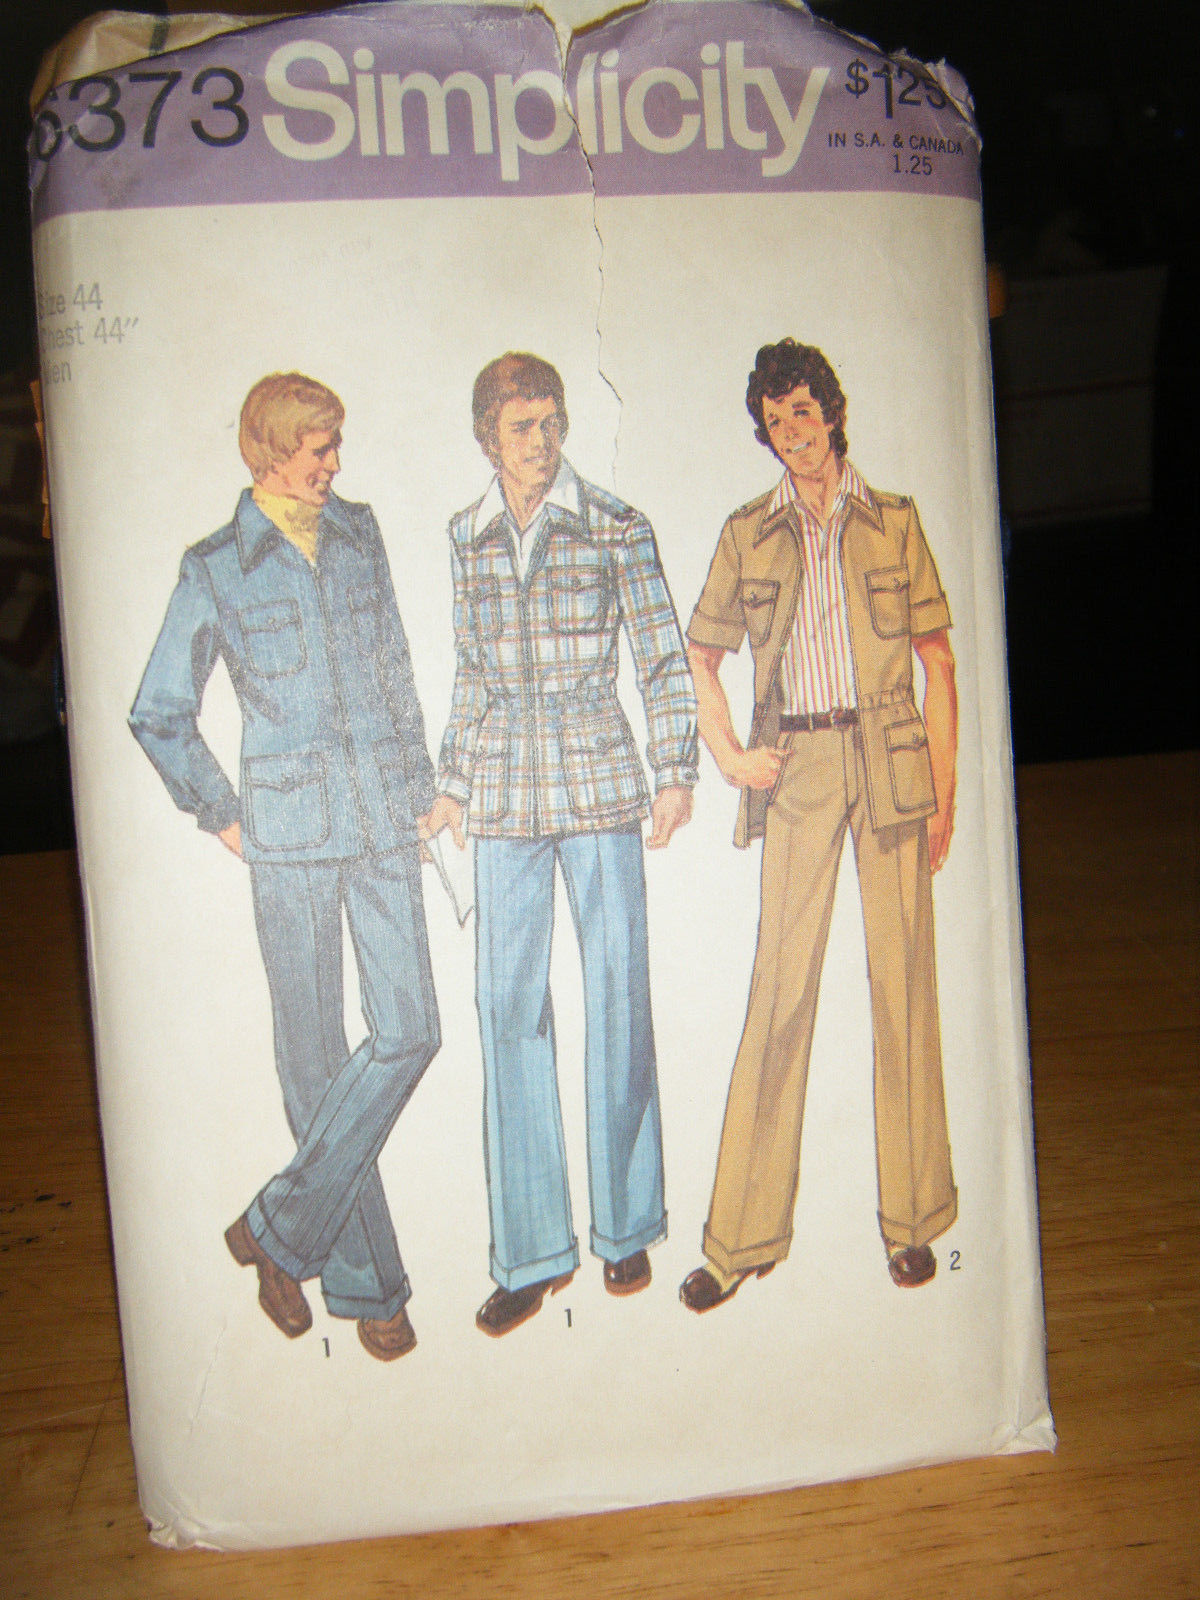 Primary image for Simplicity 6373 Men's Unlined Shirt Jacket & Pants Pattern - Chest Size 44